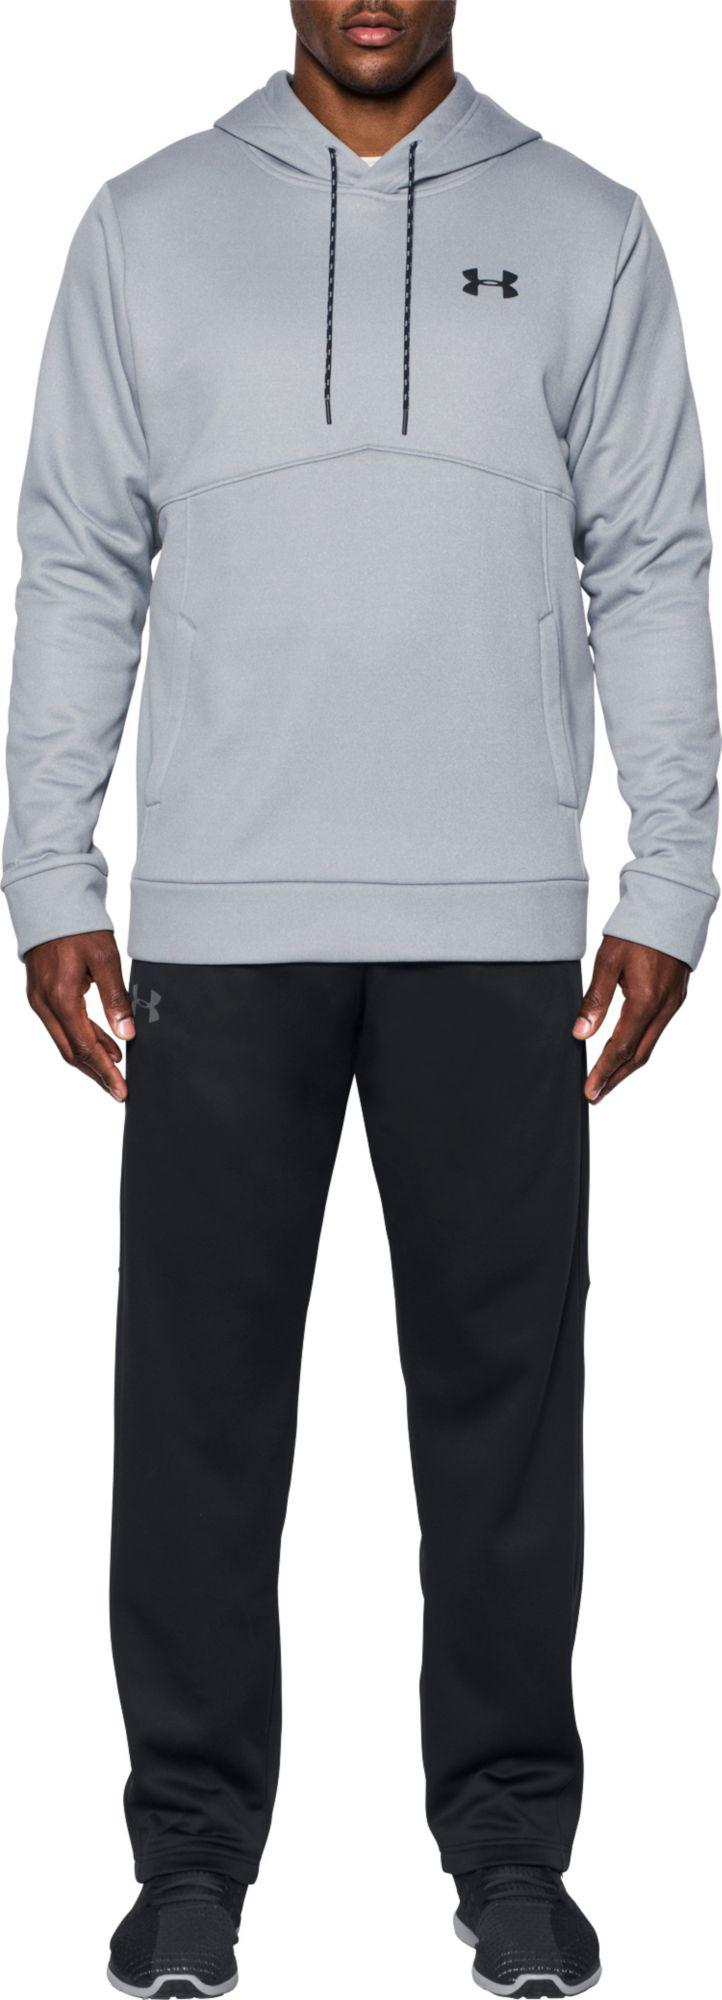 Under Armour Armour Fleece Icon Solid Pullover Hoodie in